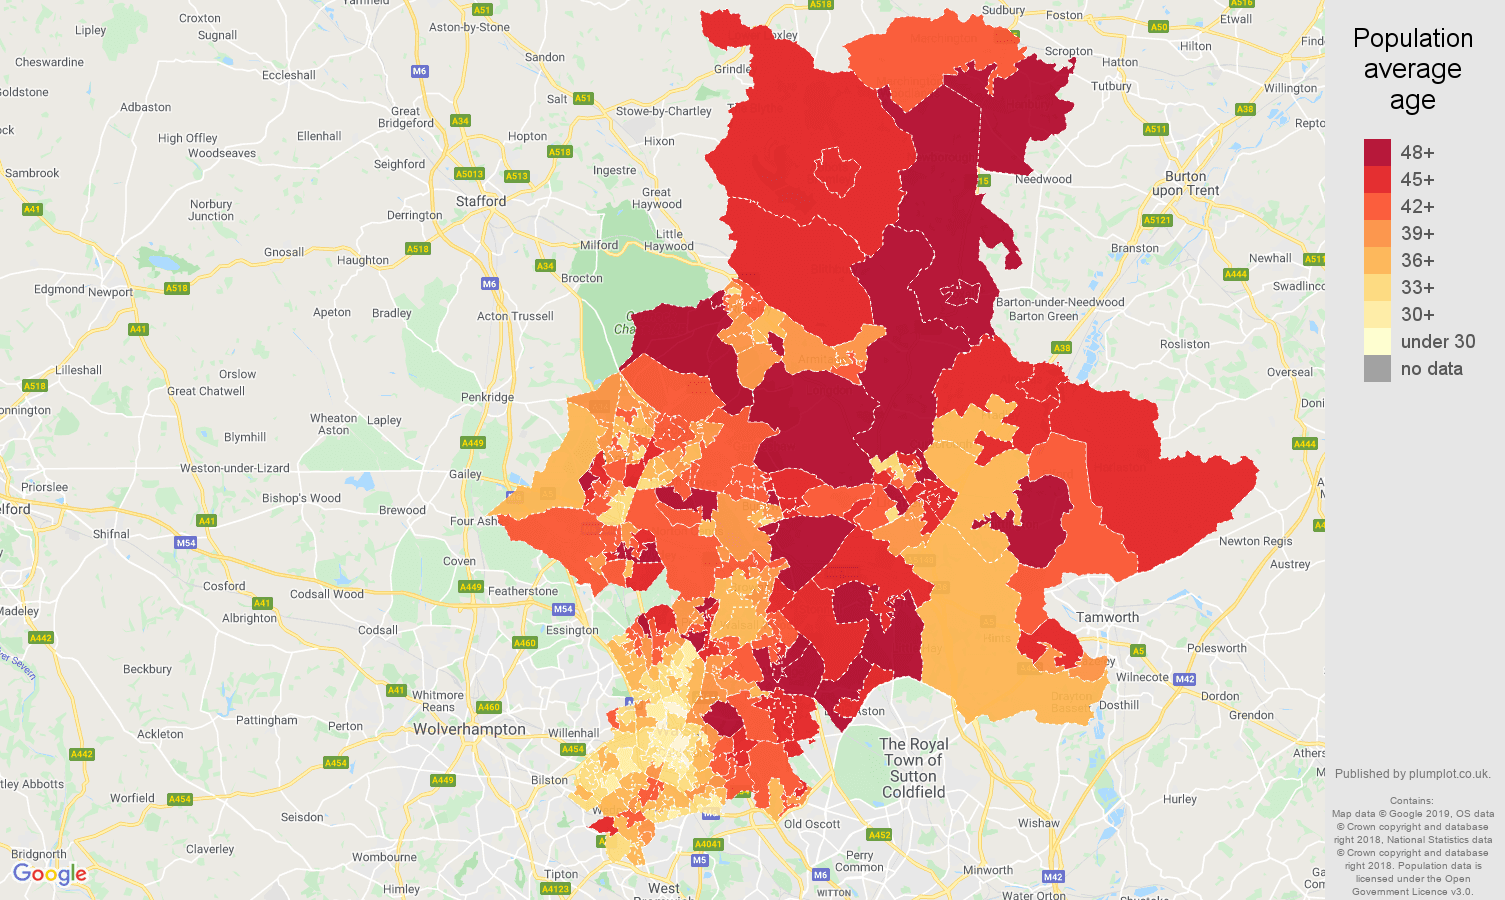 Walsall population average age map